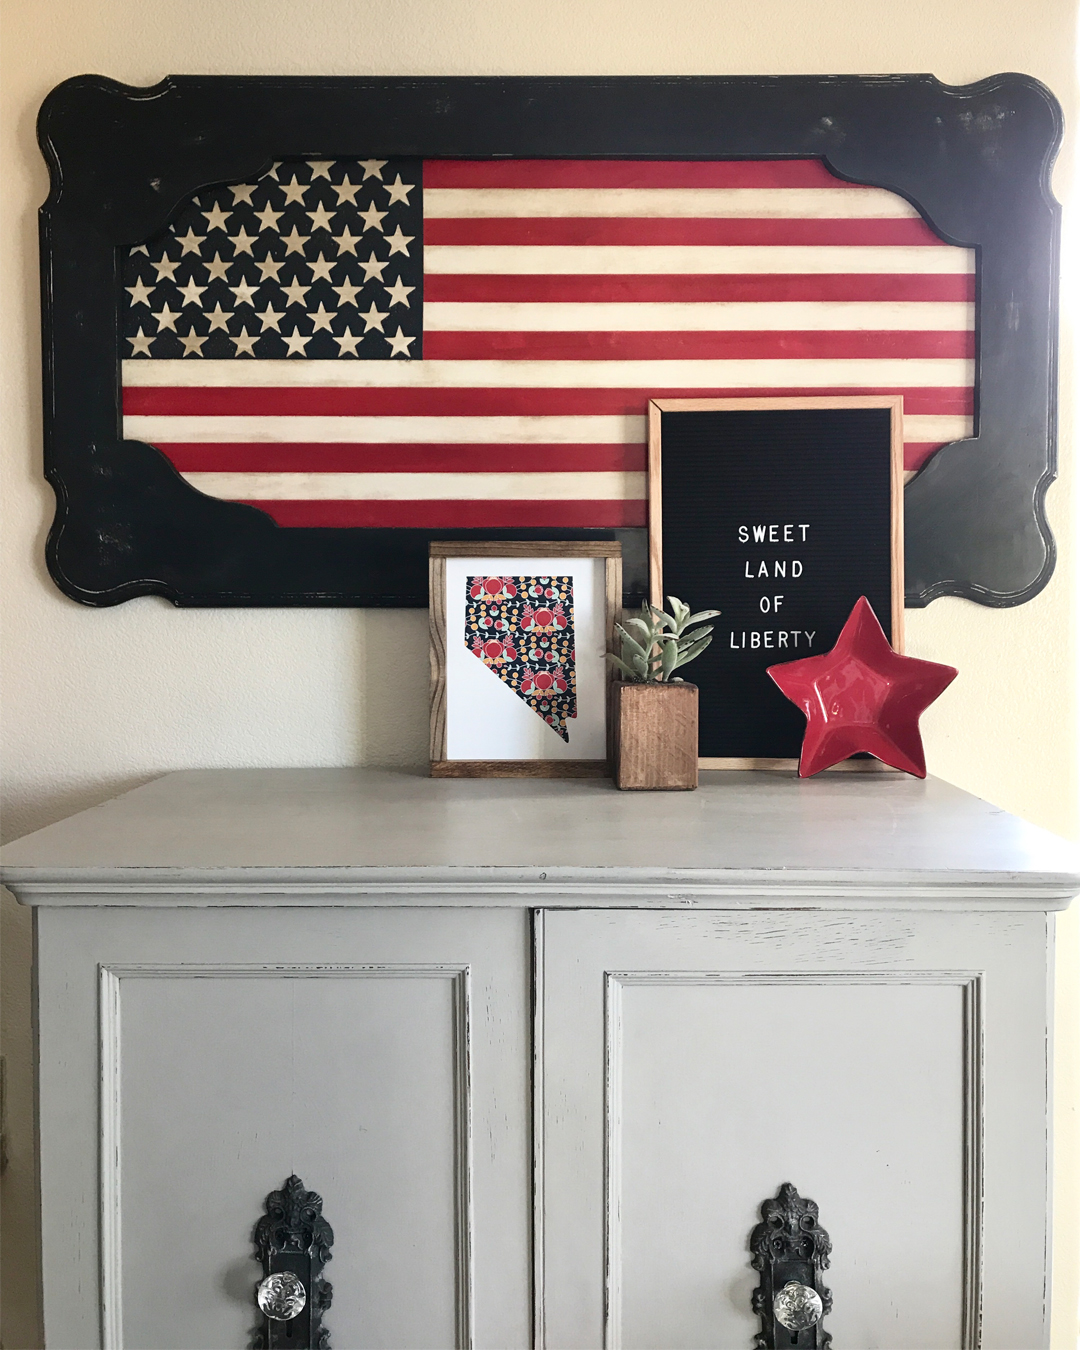 Patriotic Art from an Old Table, table Makeover DIY makeover, DIY furniture makeover, DIY at home project, furniture makeover project, furniture makeover project, before and after furniture makeover, BB Frosch, chalk paint DIY, chalk paint furniture makeover project, DIY furniture makeover inspiration, DIY home weekend project